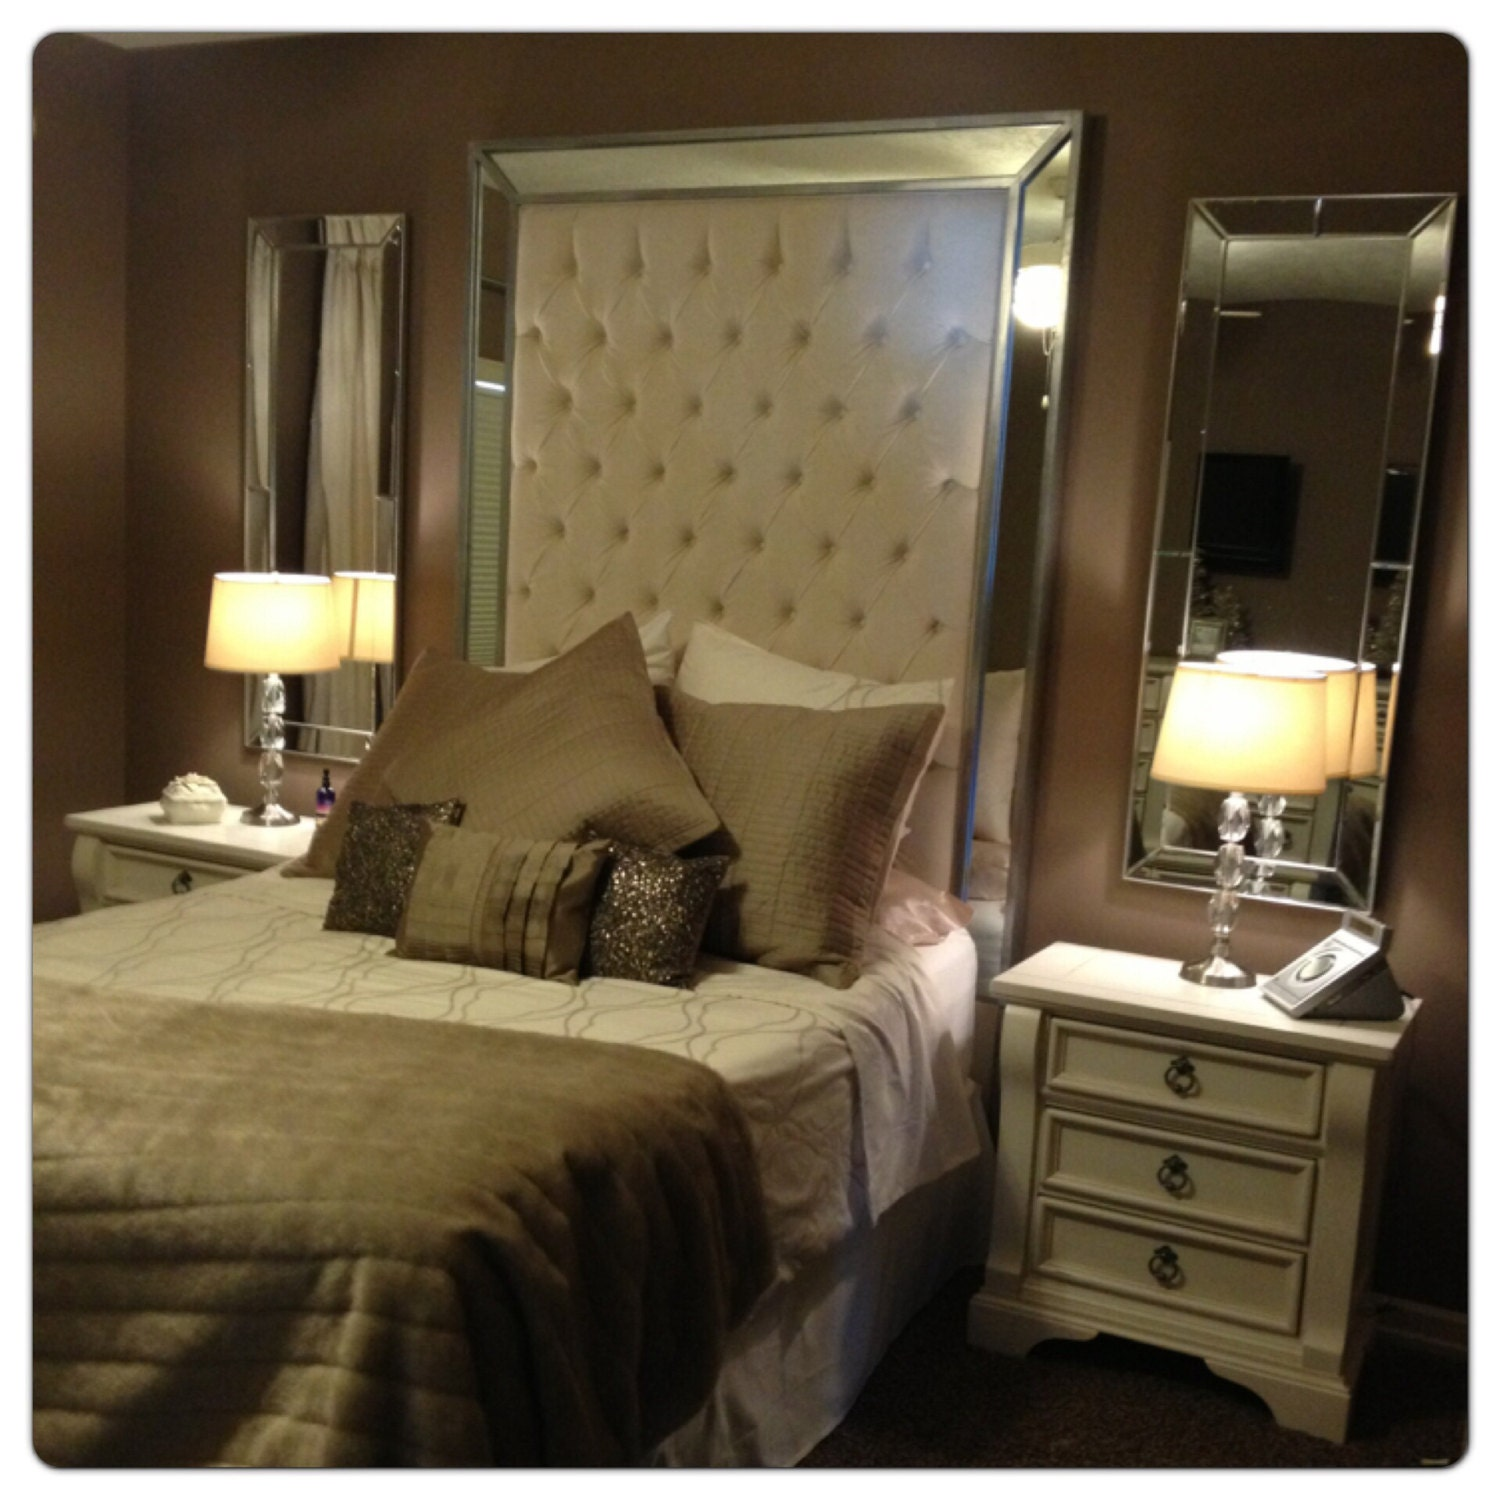 headboard with mirrors extra tall headboard queen size. Black Bedroom Furniture Sets. Home Design Ideas